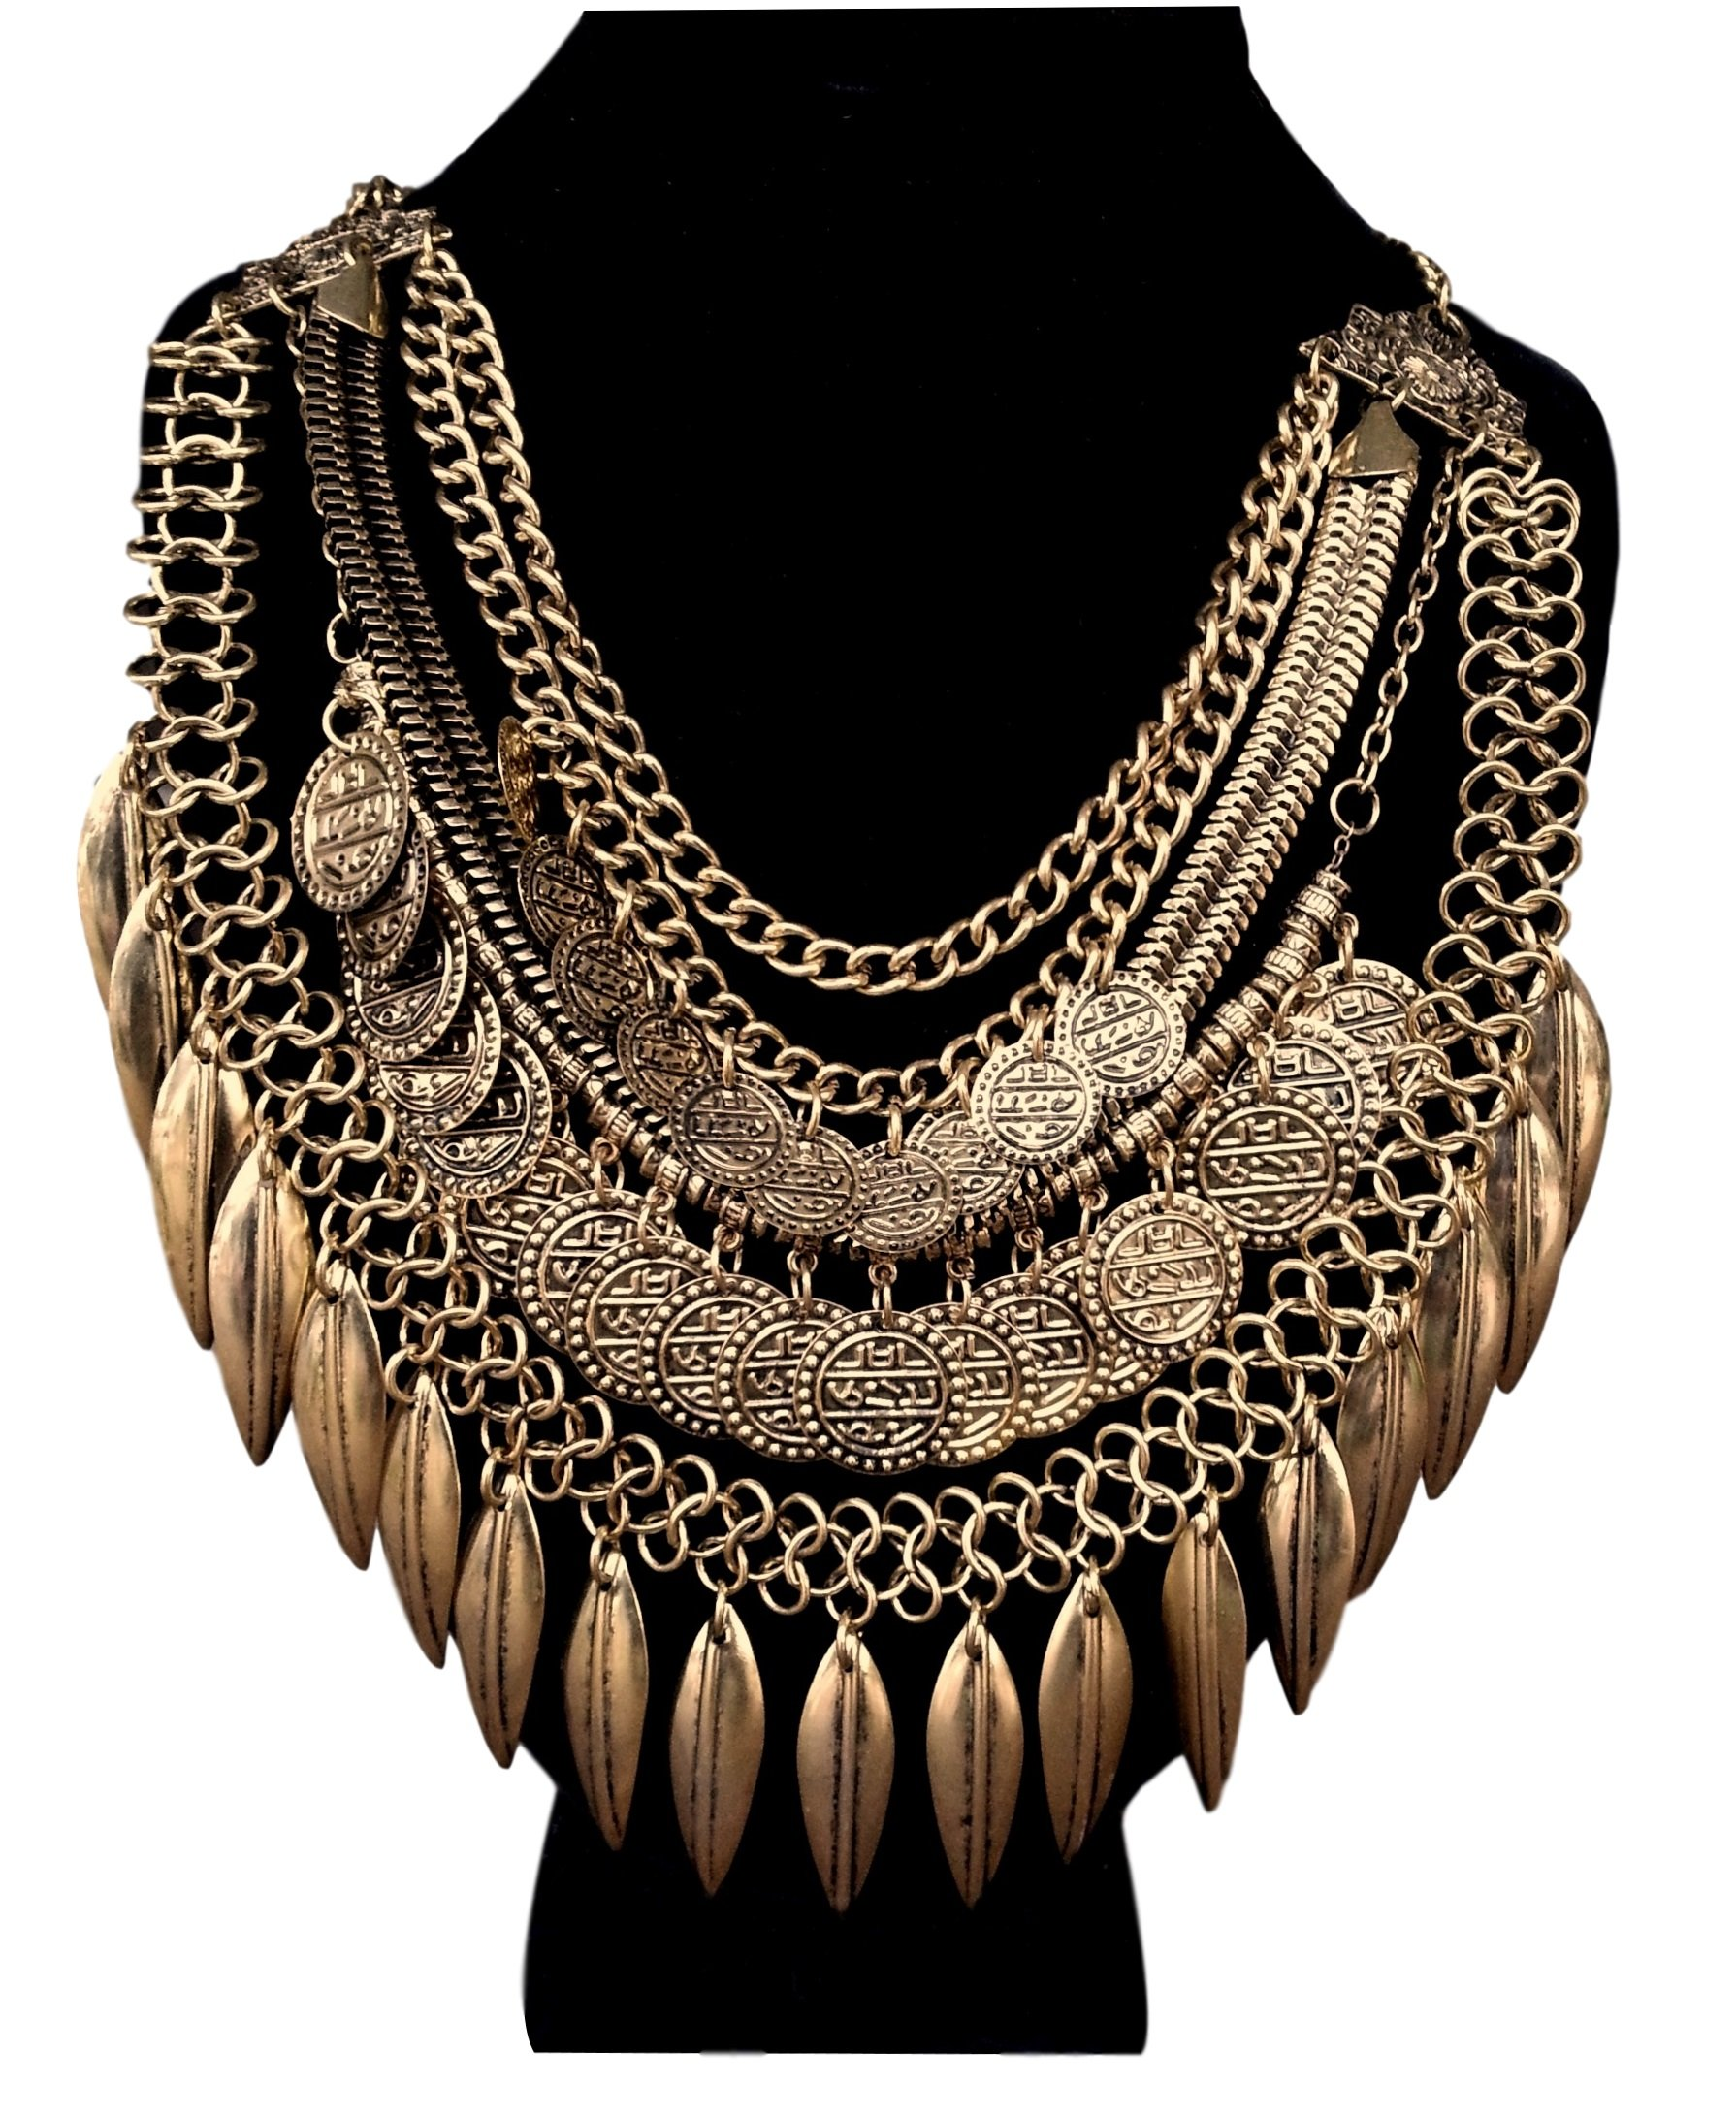 Pashal Indian, Tribal & Bohemian Style Hanging Coin Statement Bib Collar Necklace